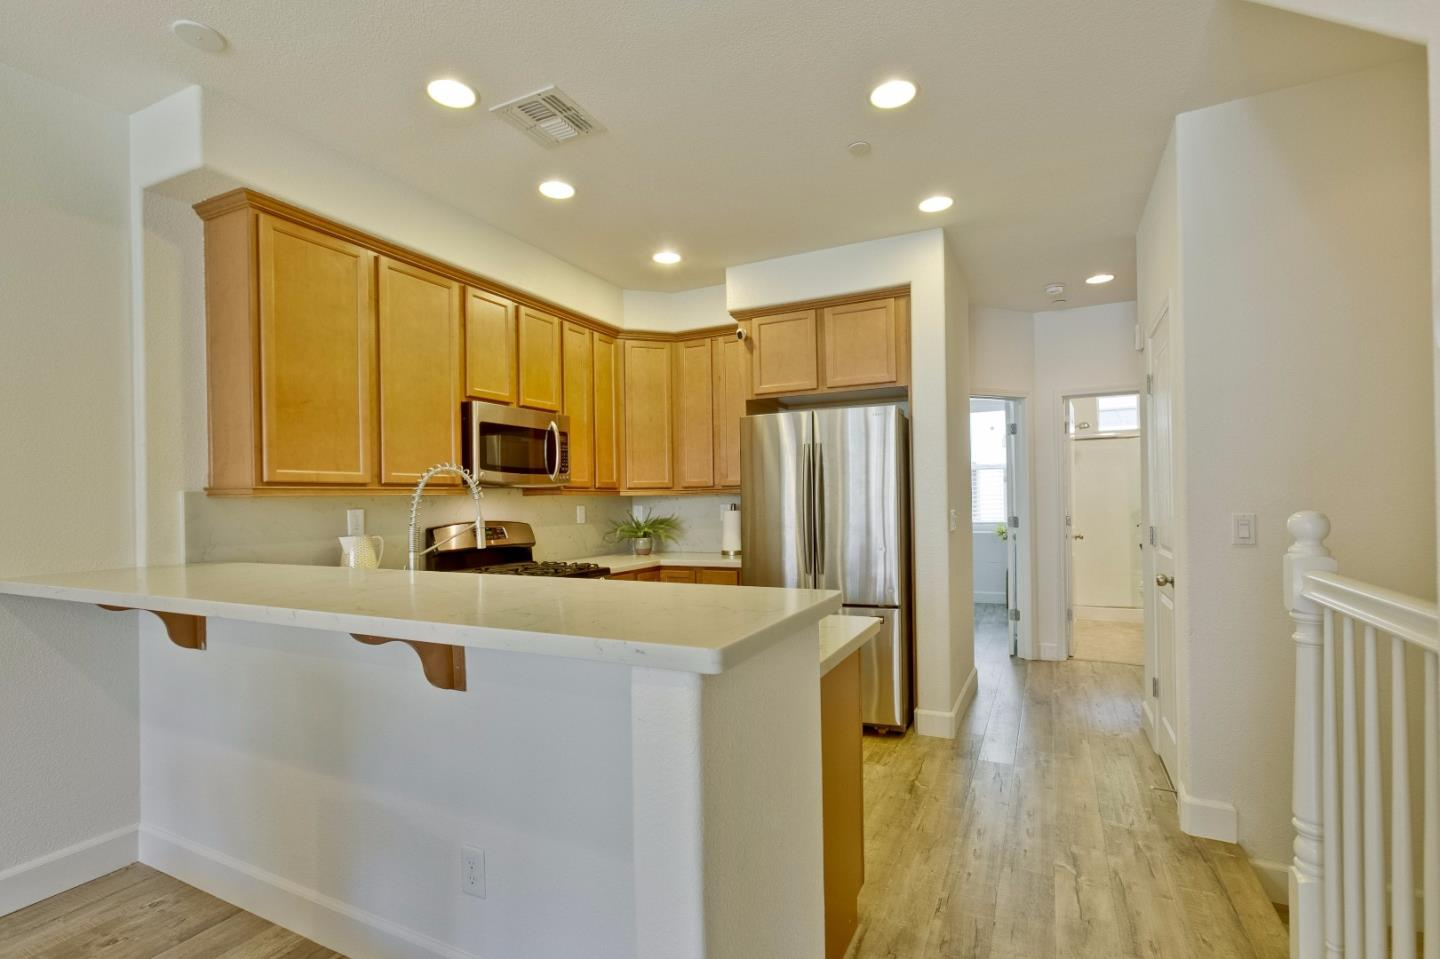 Additional photo for property listing at 1081 Zucchini Terrace  San Jose, Калифорния 95133 Соединенные Штаты